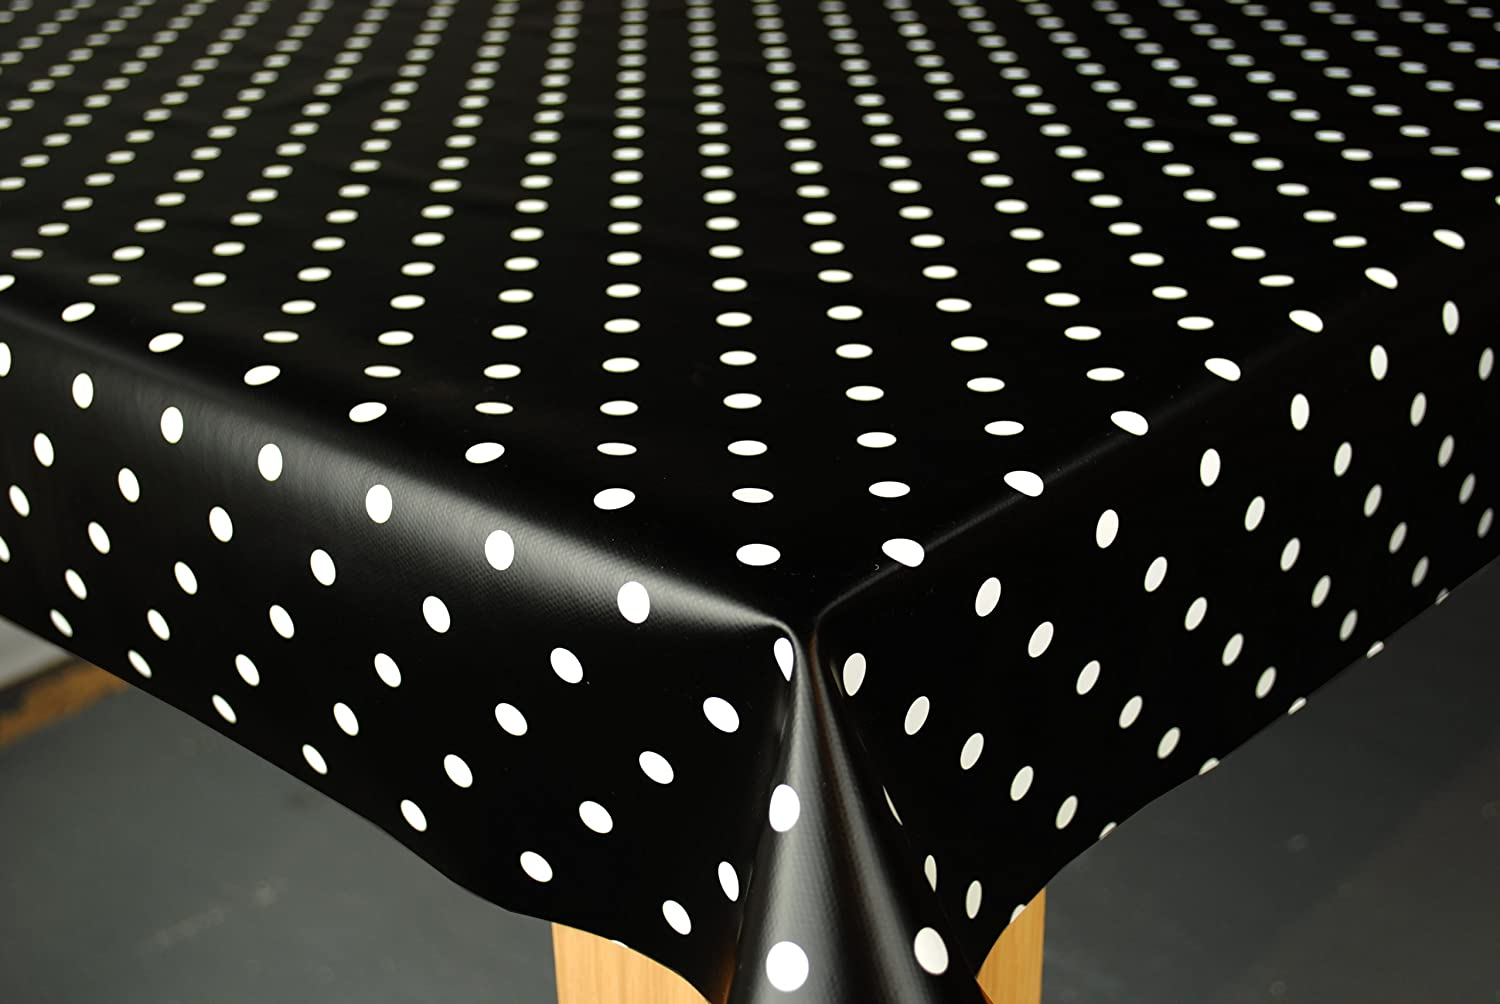 Amazon.com: Wipe Clean Tablecloth Oilcloth Vinyl PVC Black Polka Dot Spot  200cm X 137cm